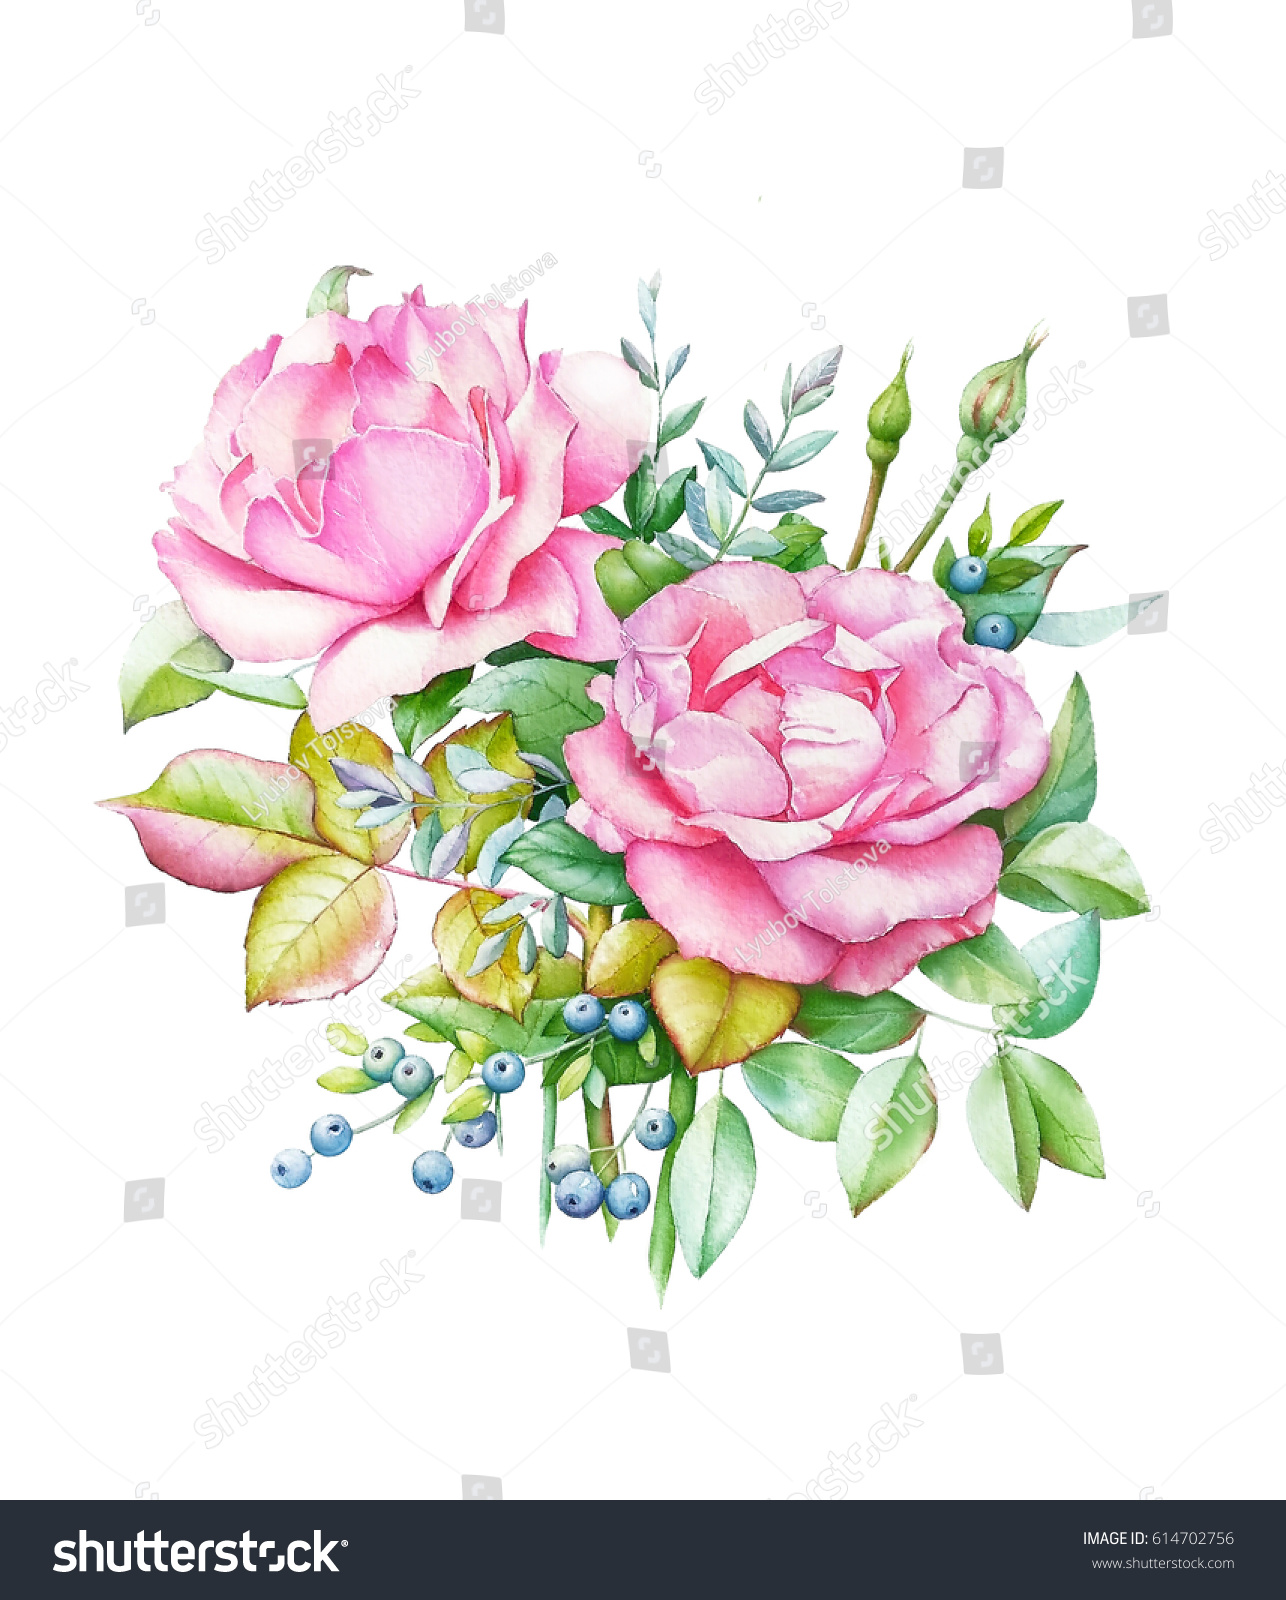 Watercolor illustration bouquet two pink roses stock illustration watercolor illustration of bouquet with two pink roses and buds green leaves and blue berries izmirmasajfo